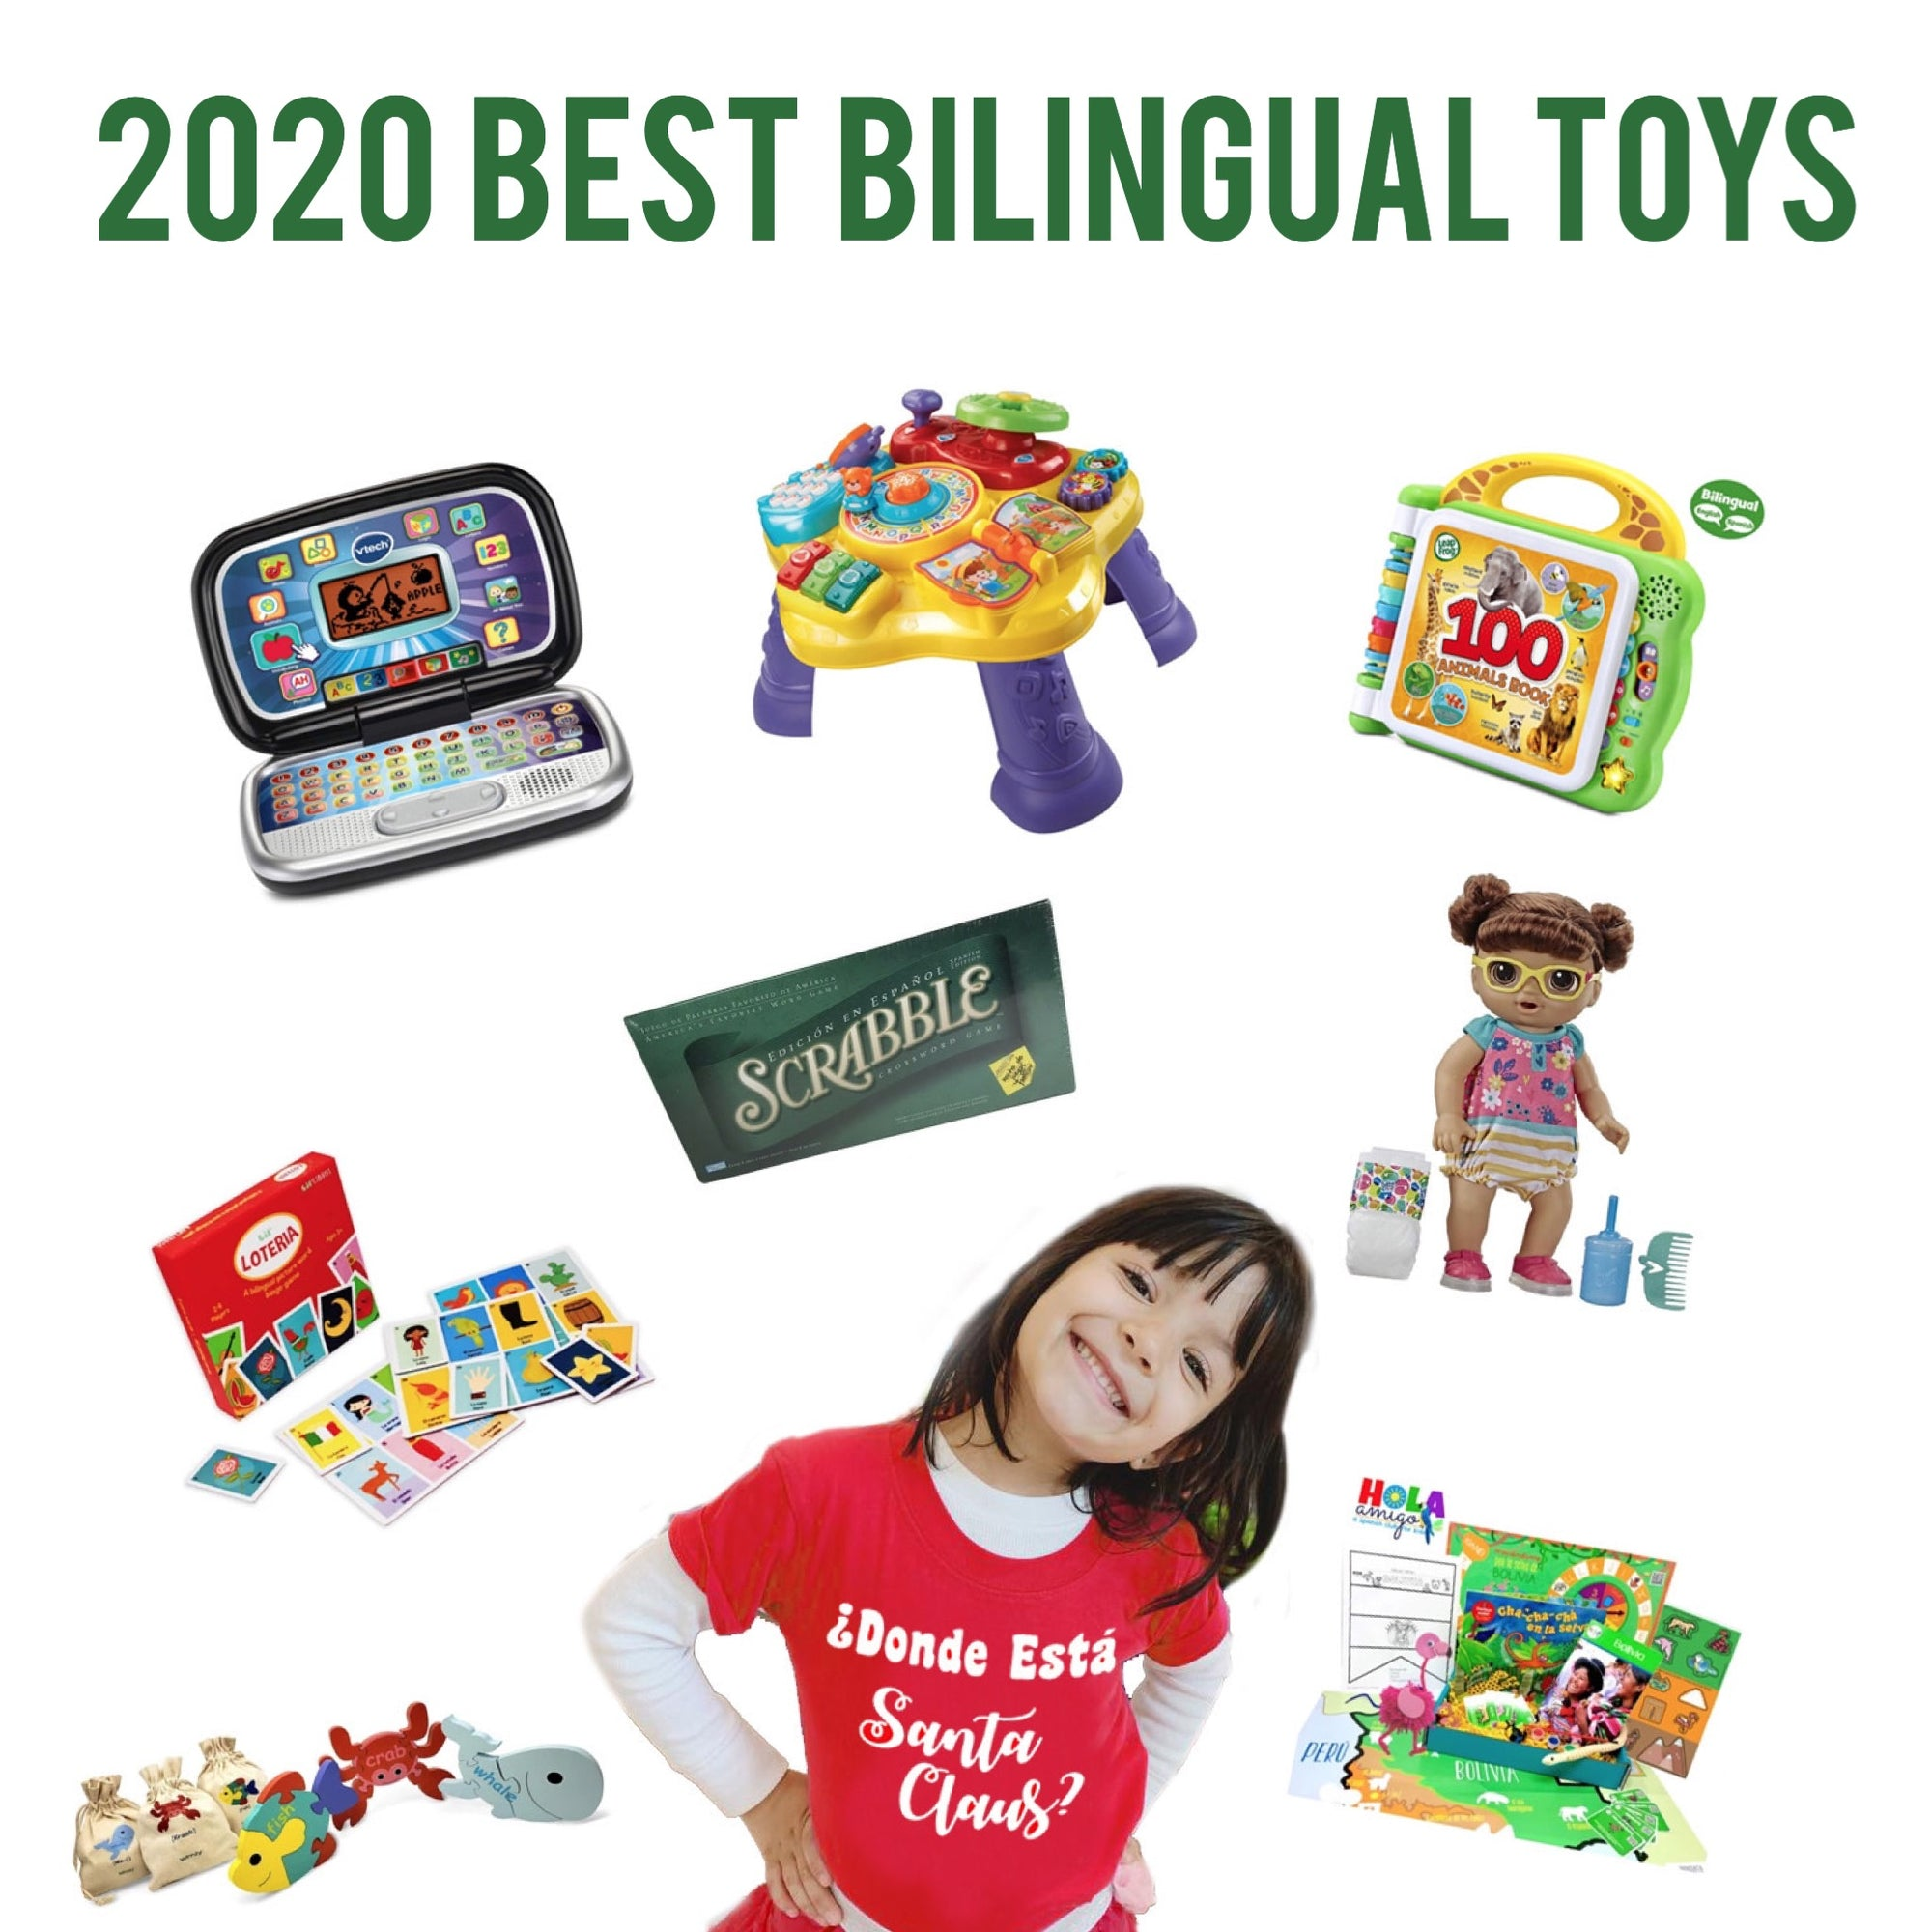 2020 Best Bilingual Toys To Teach Your Child Spanish